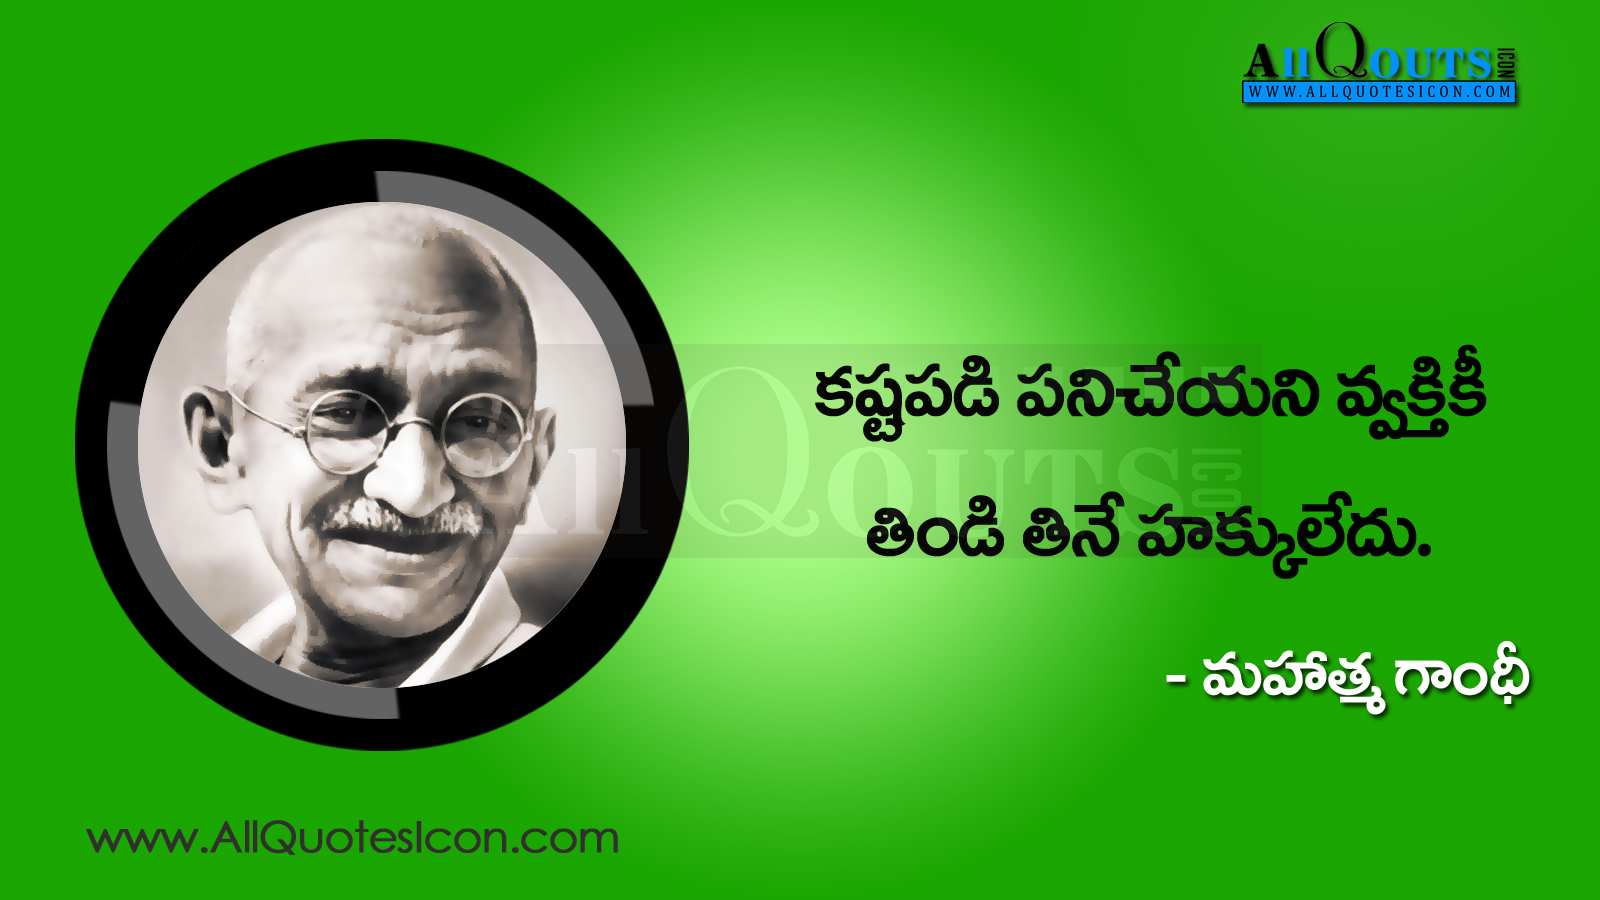 mahatma gandhi telugu quotes hd wallpapers best inspiration quotes